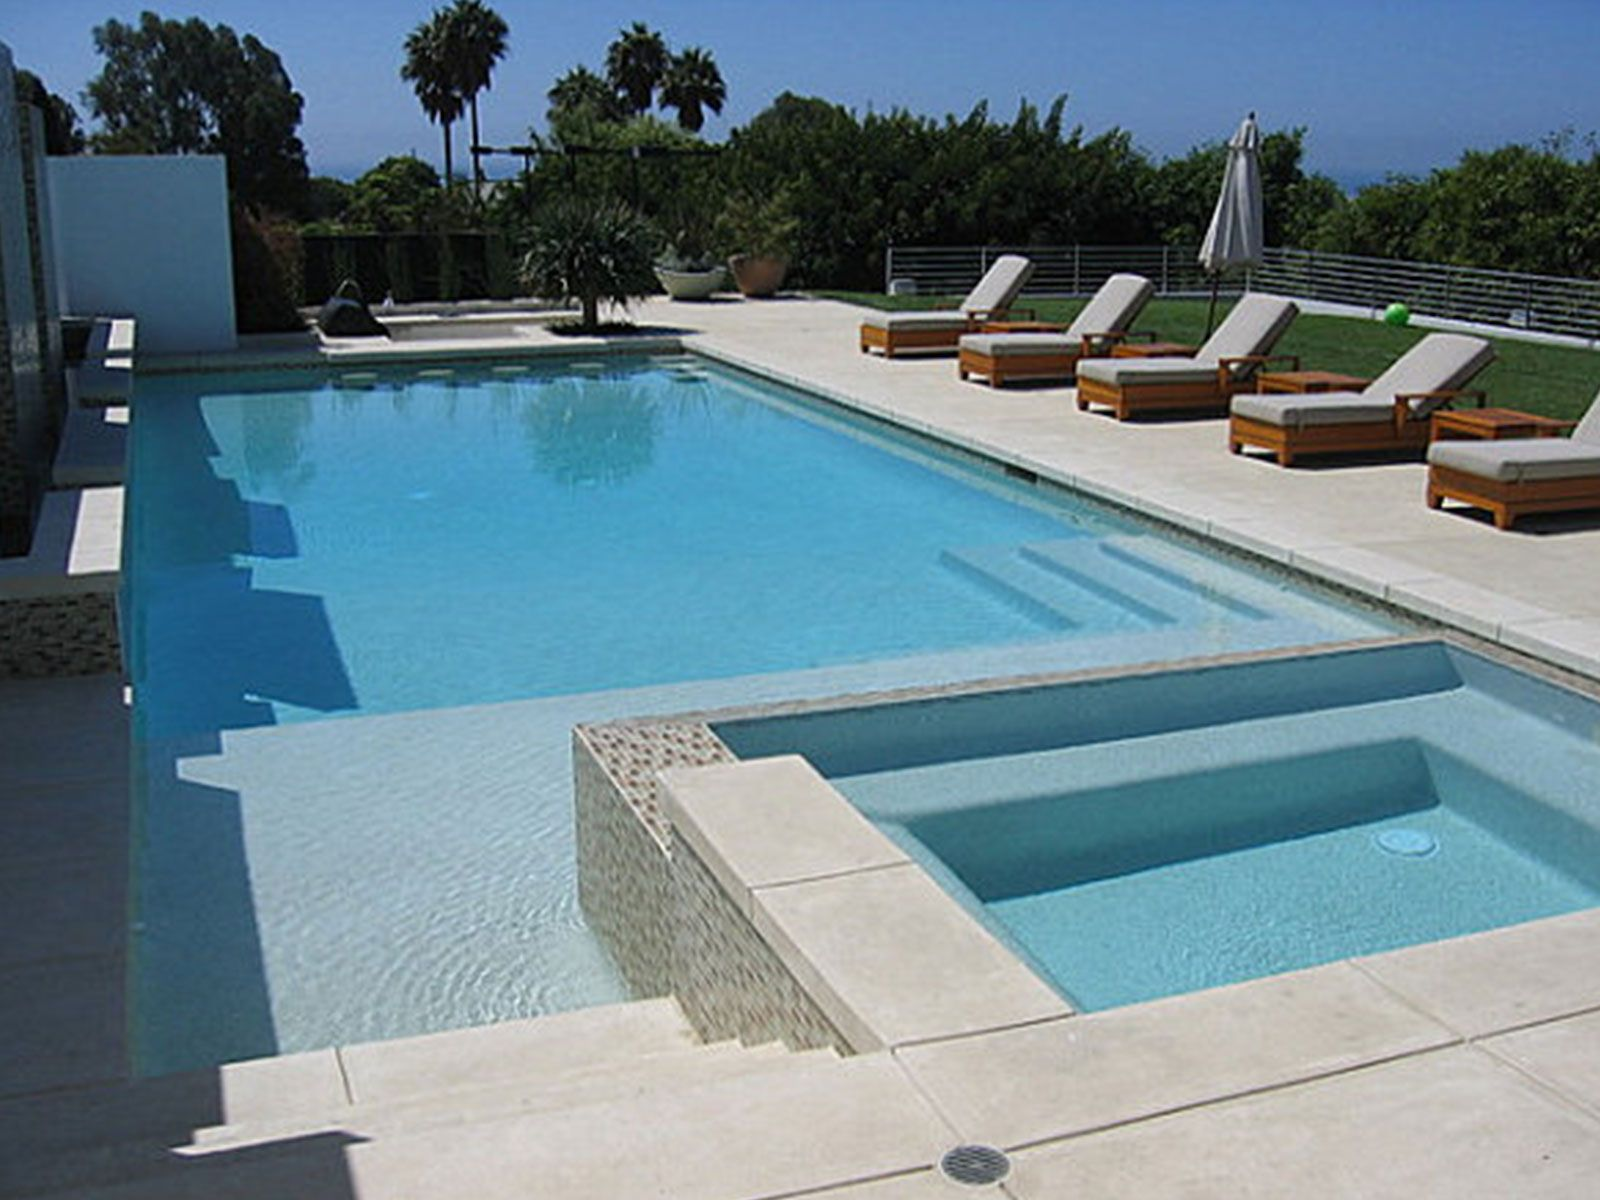 Simple swimming pool design image modern creative swimming for Pool design tiles